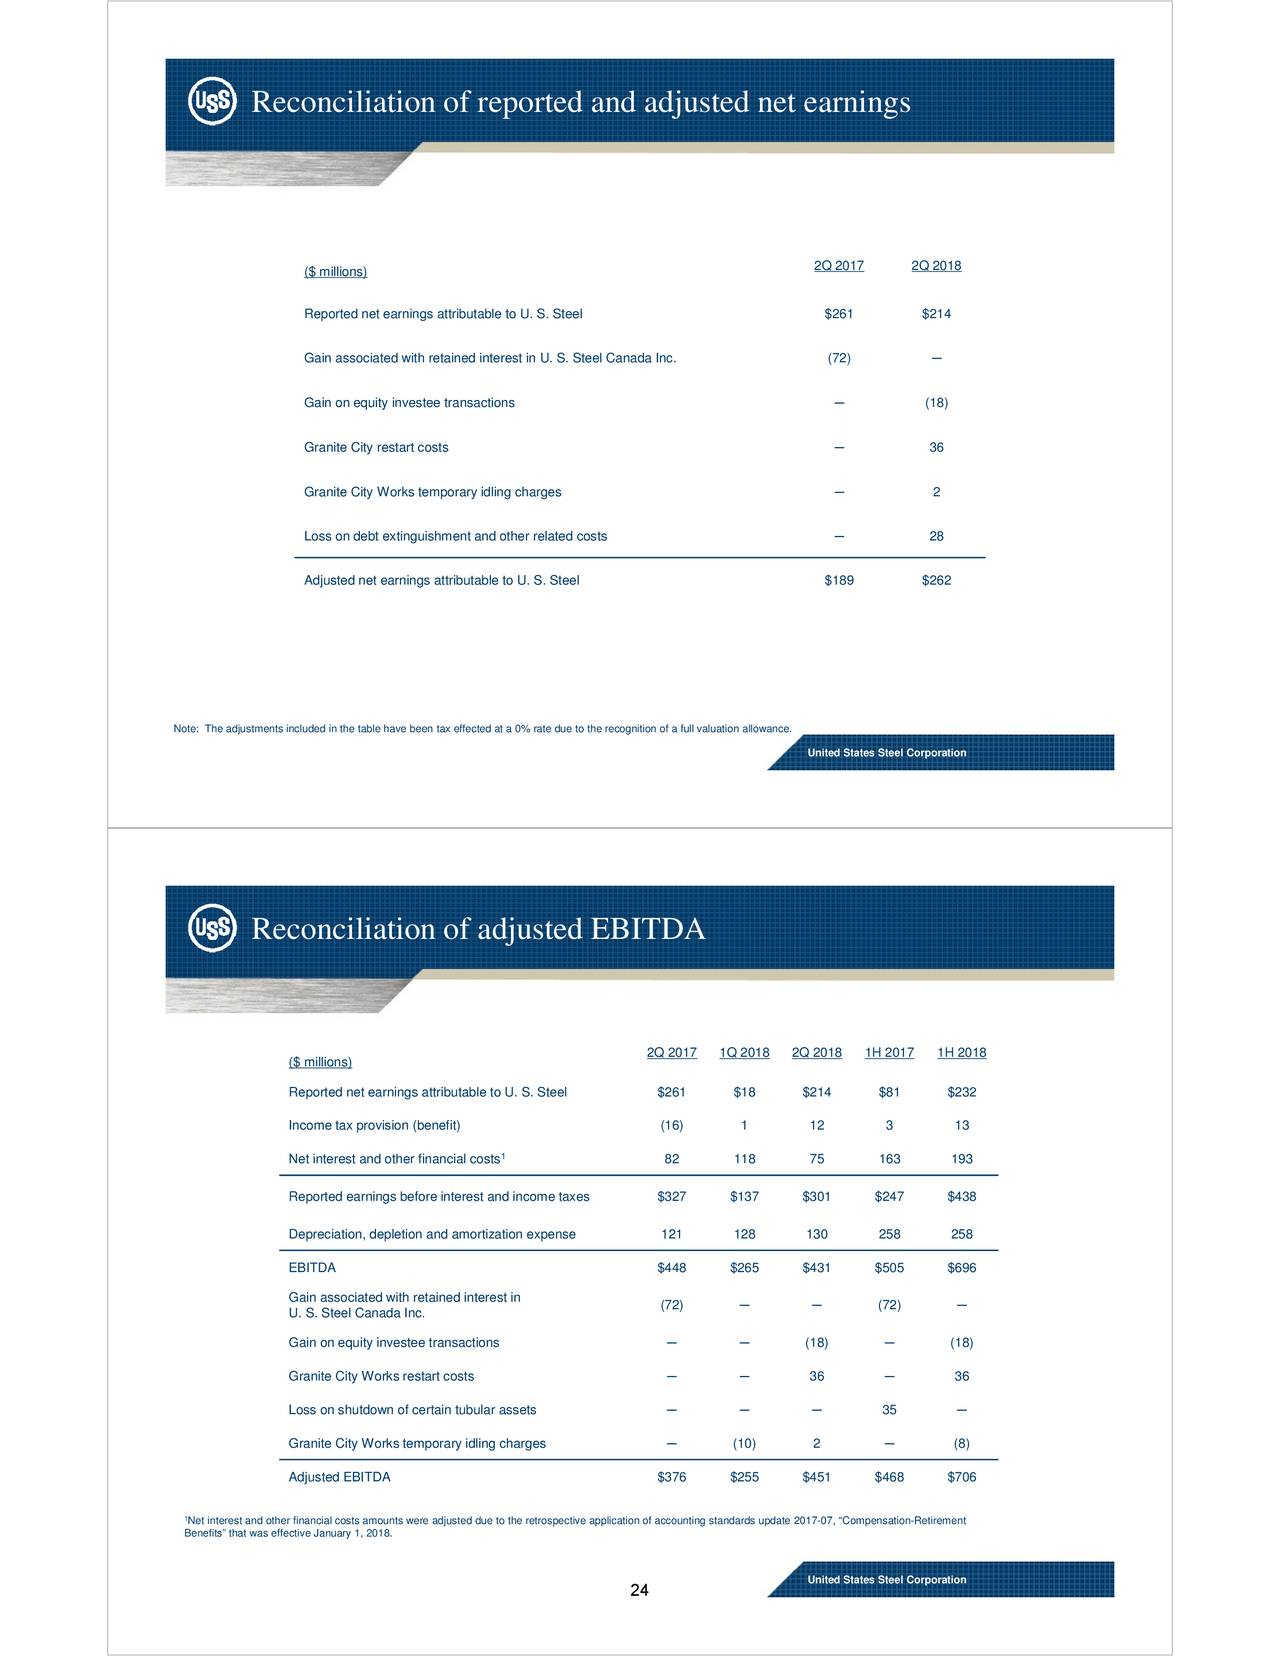 United States Steel Corporation 2018 Q2 Results